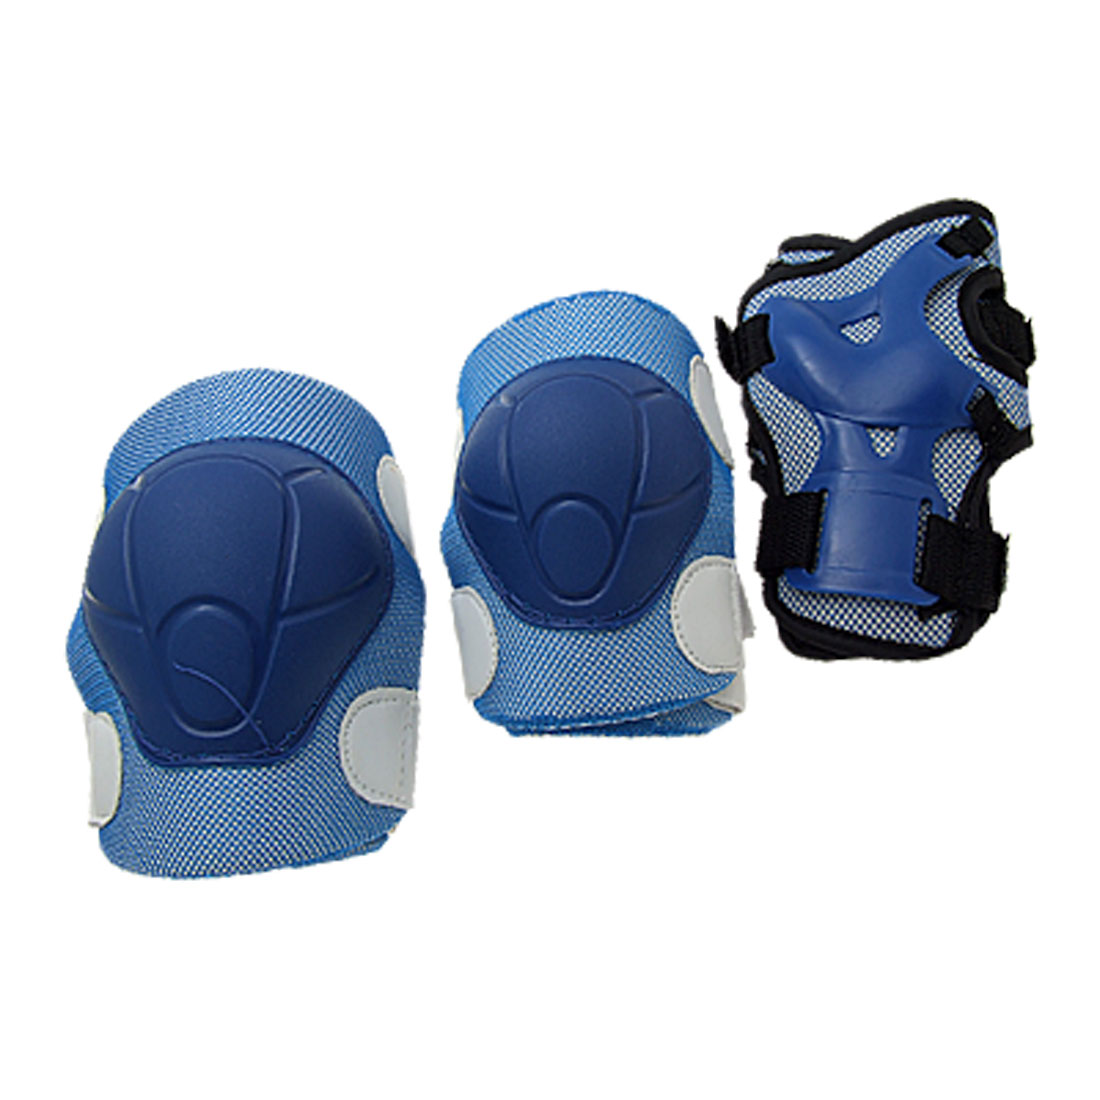 Sport Skate Protector Elbow Knee Wrist Kid's Support Blue